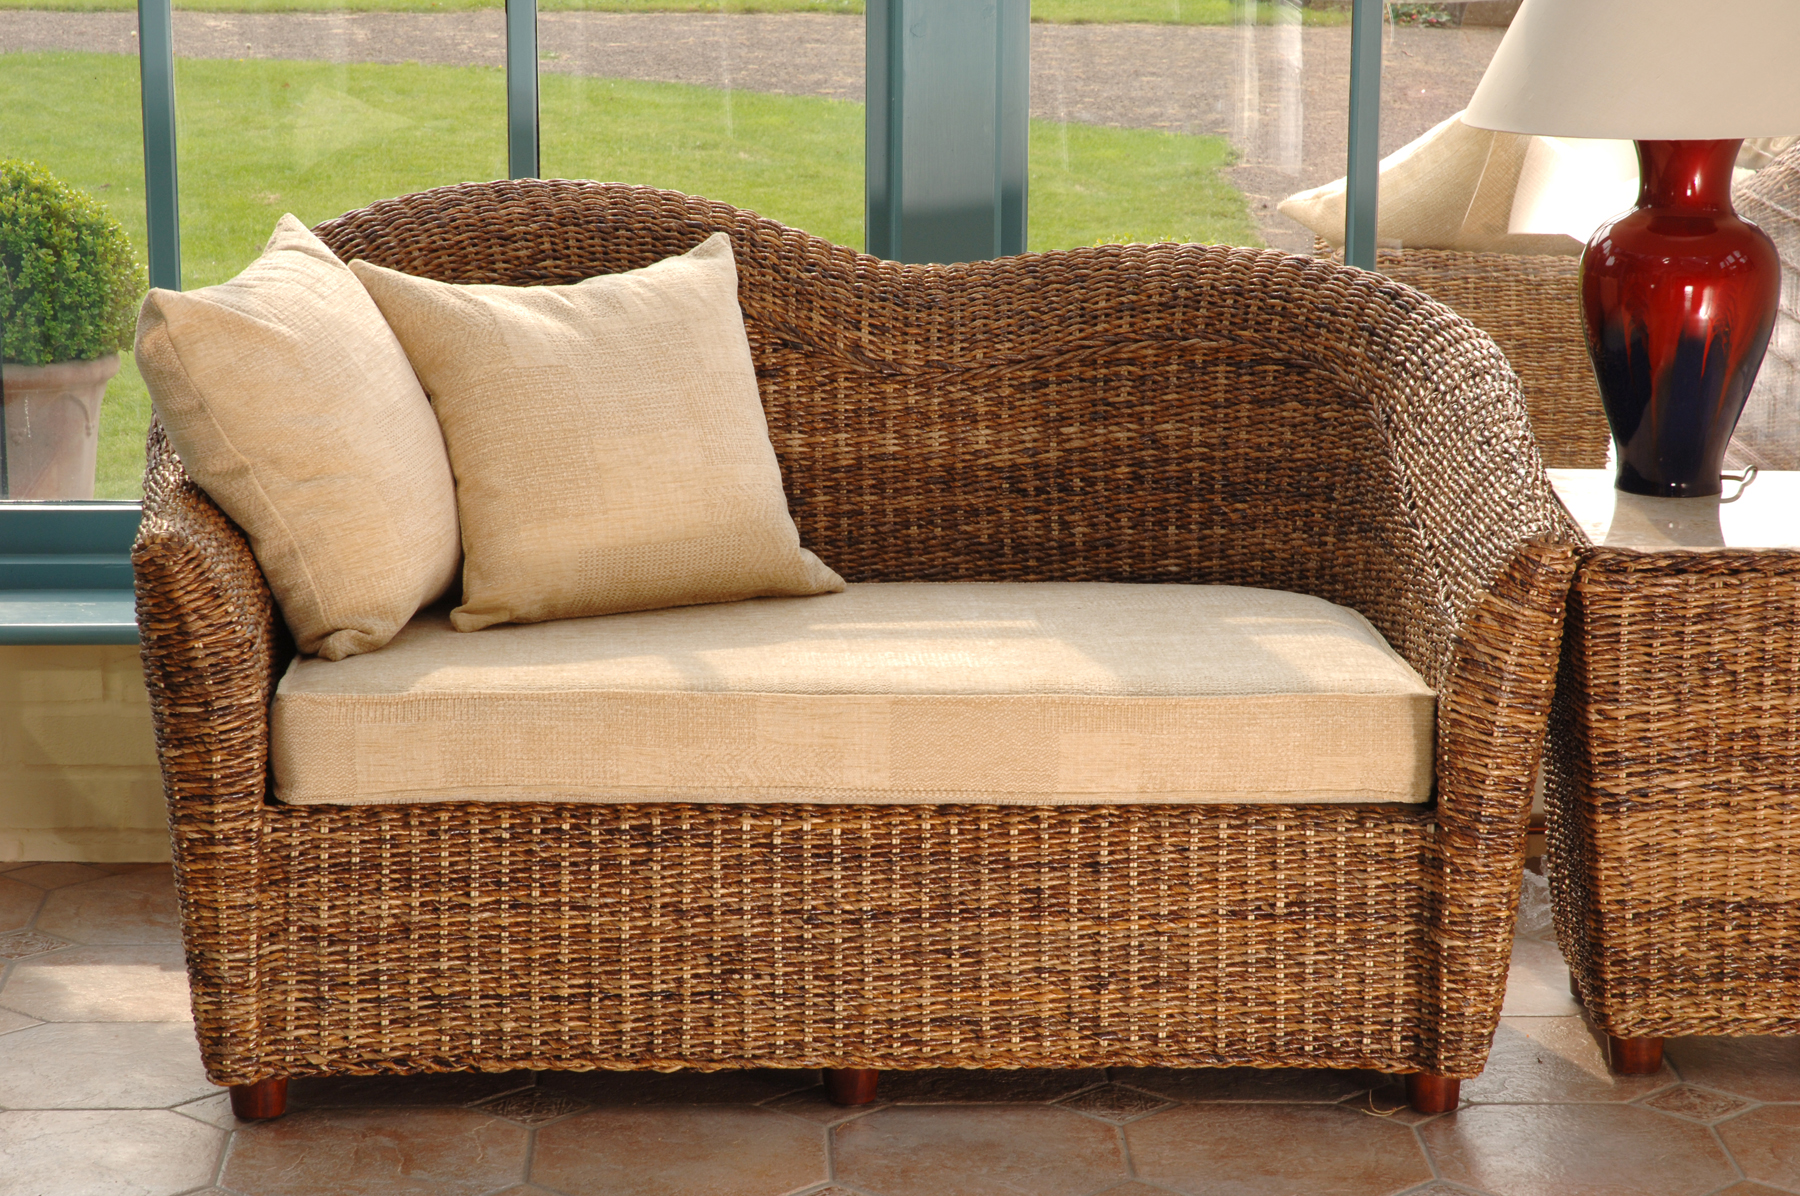 Cane conservatory furniture banana leaf furniture cane for Furniture uk